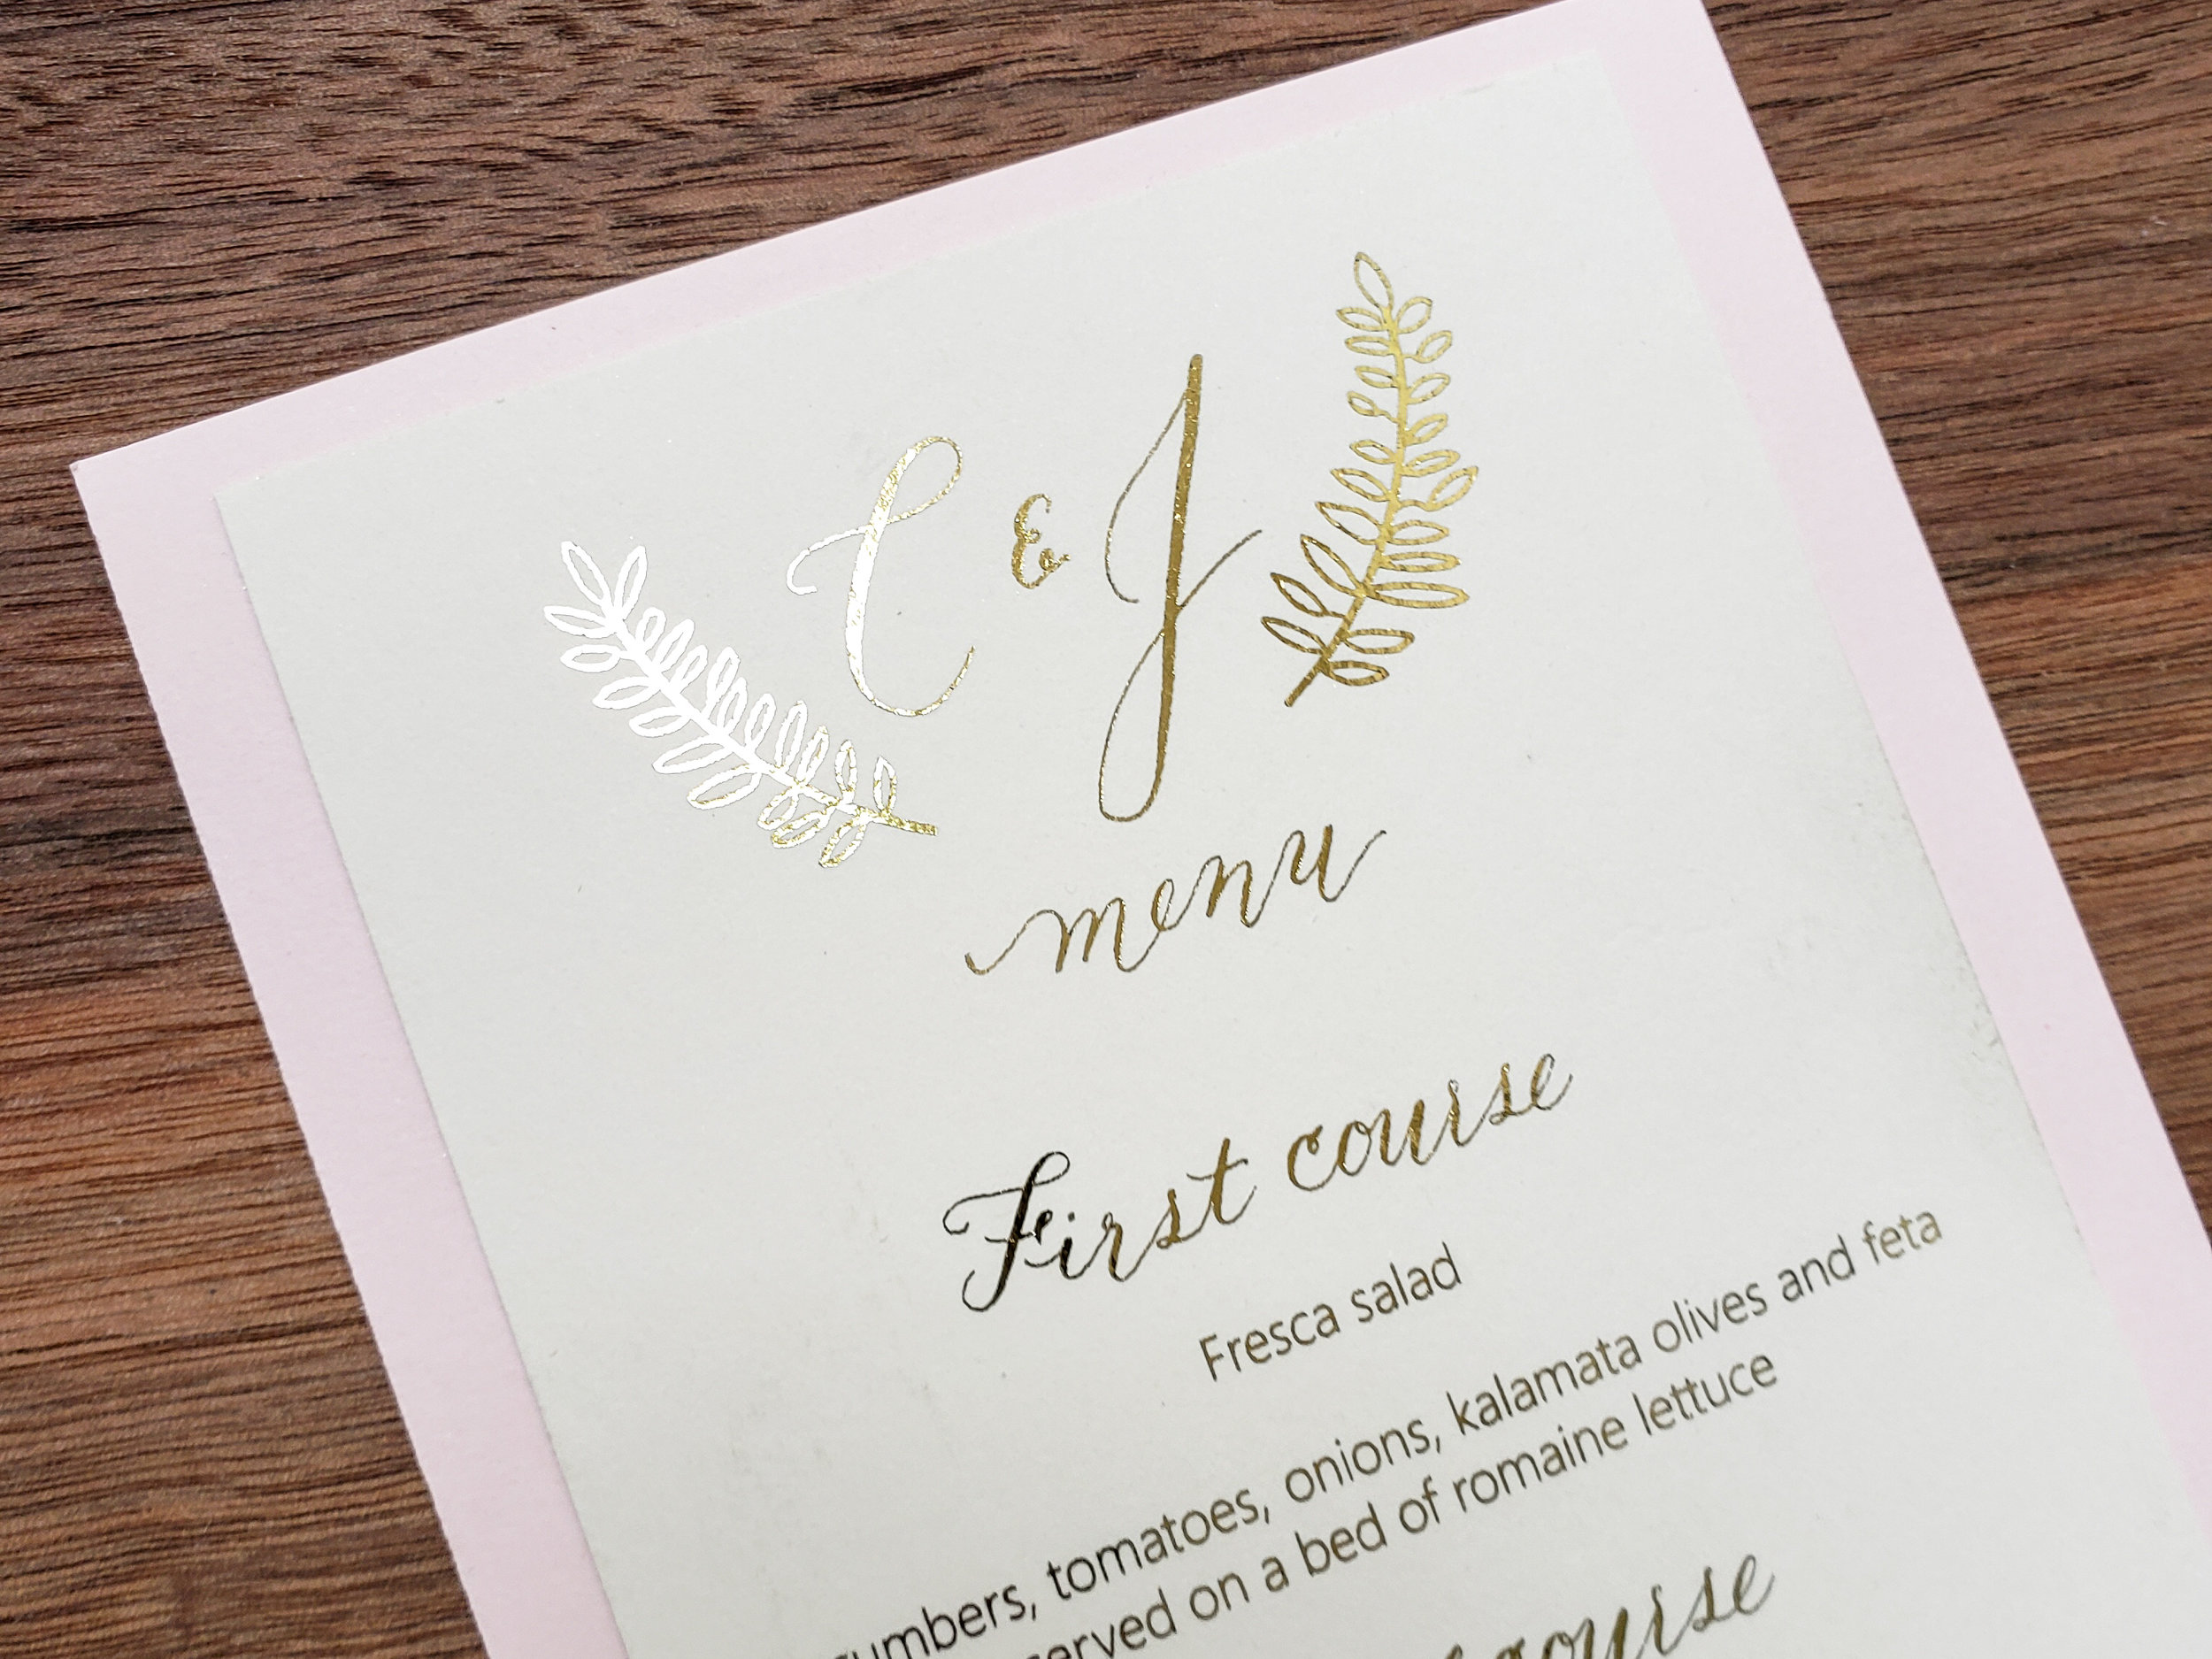 Contact us - Ready to discuss your calligraphy and event needs?